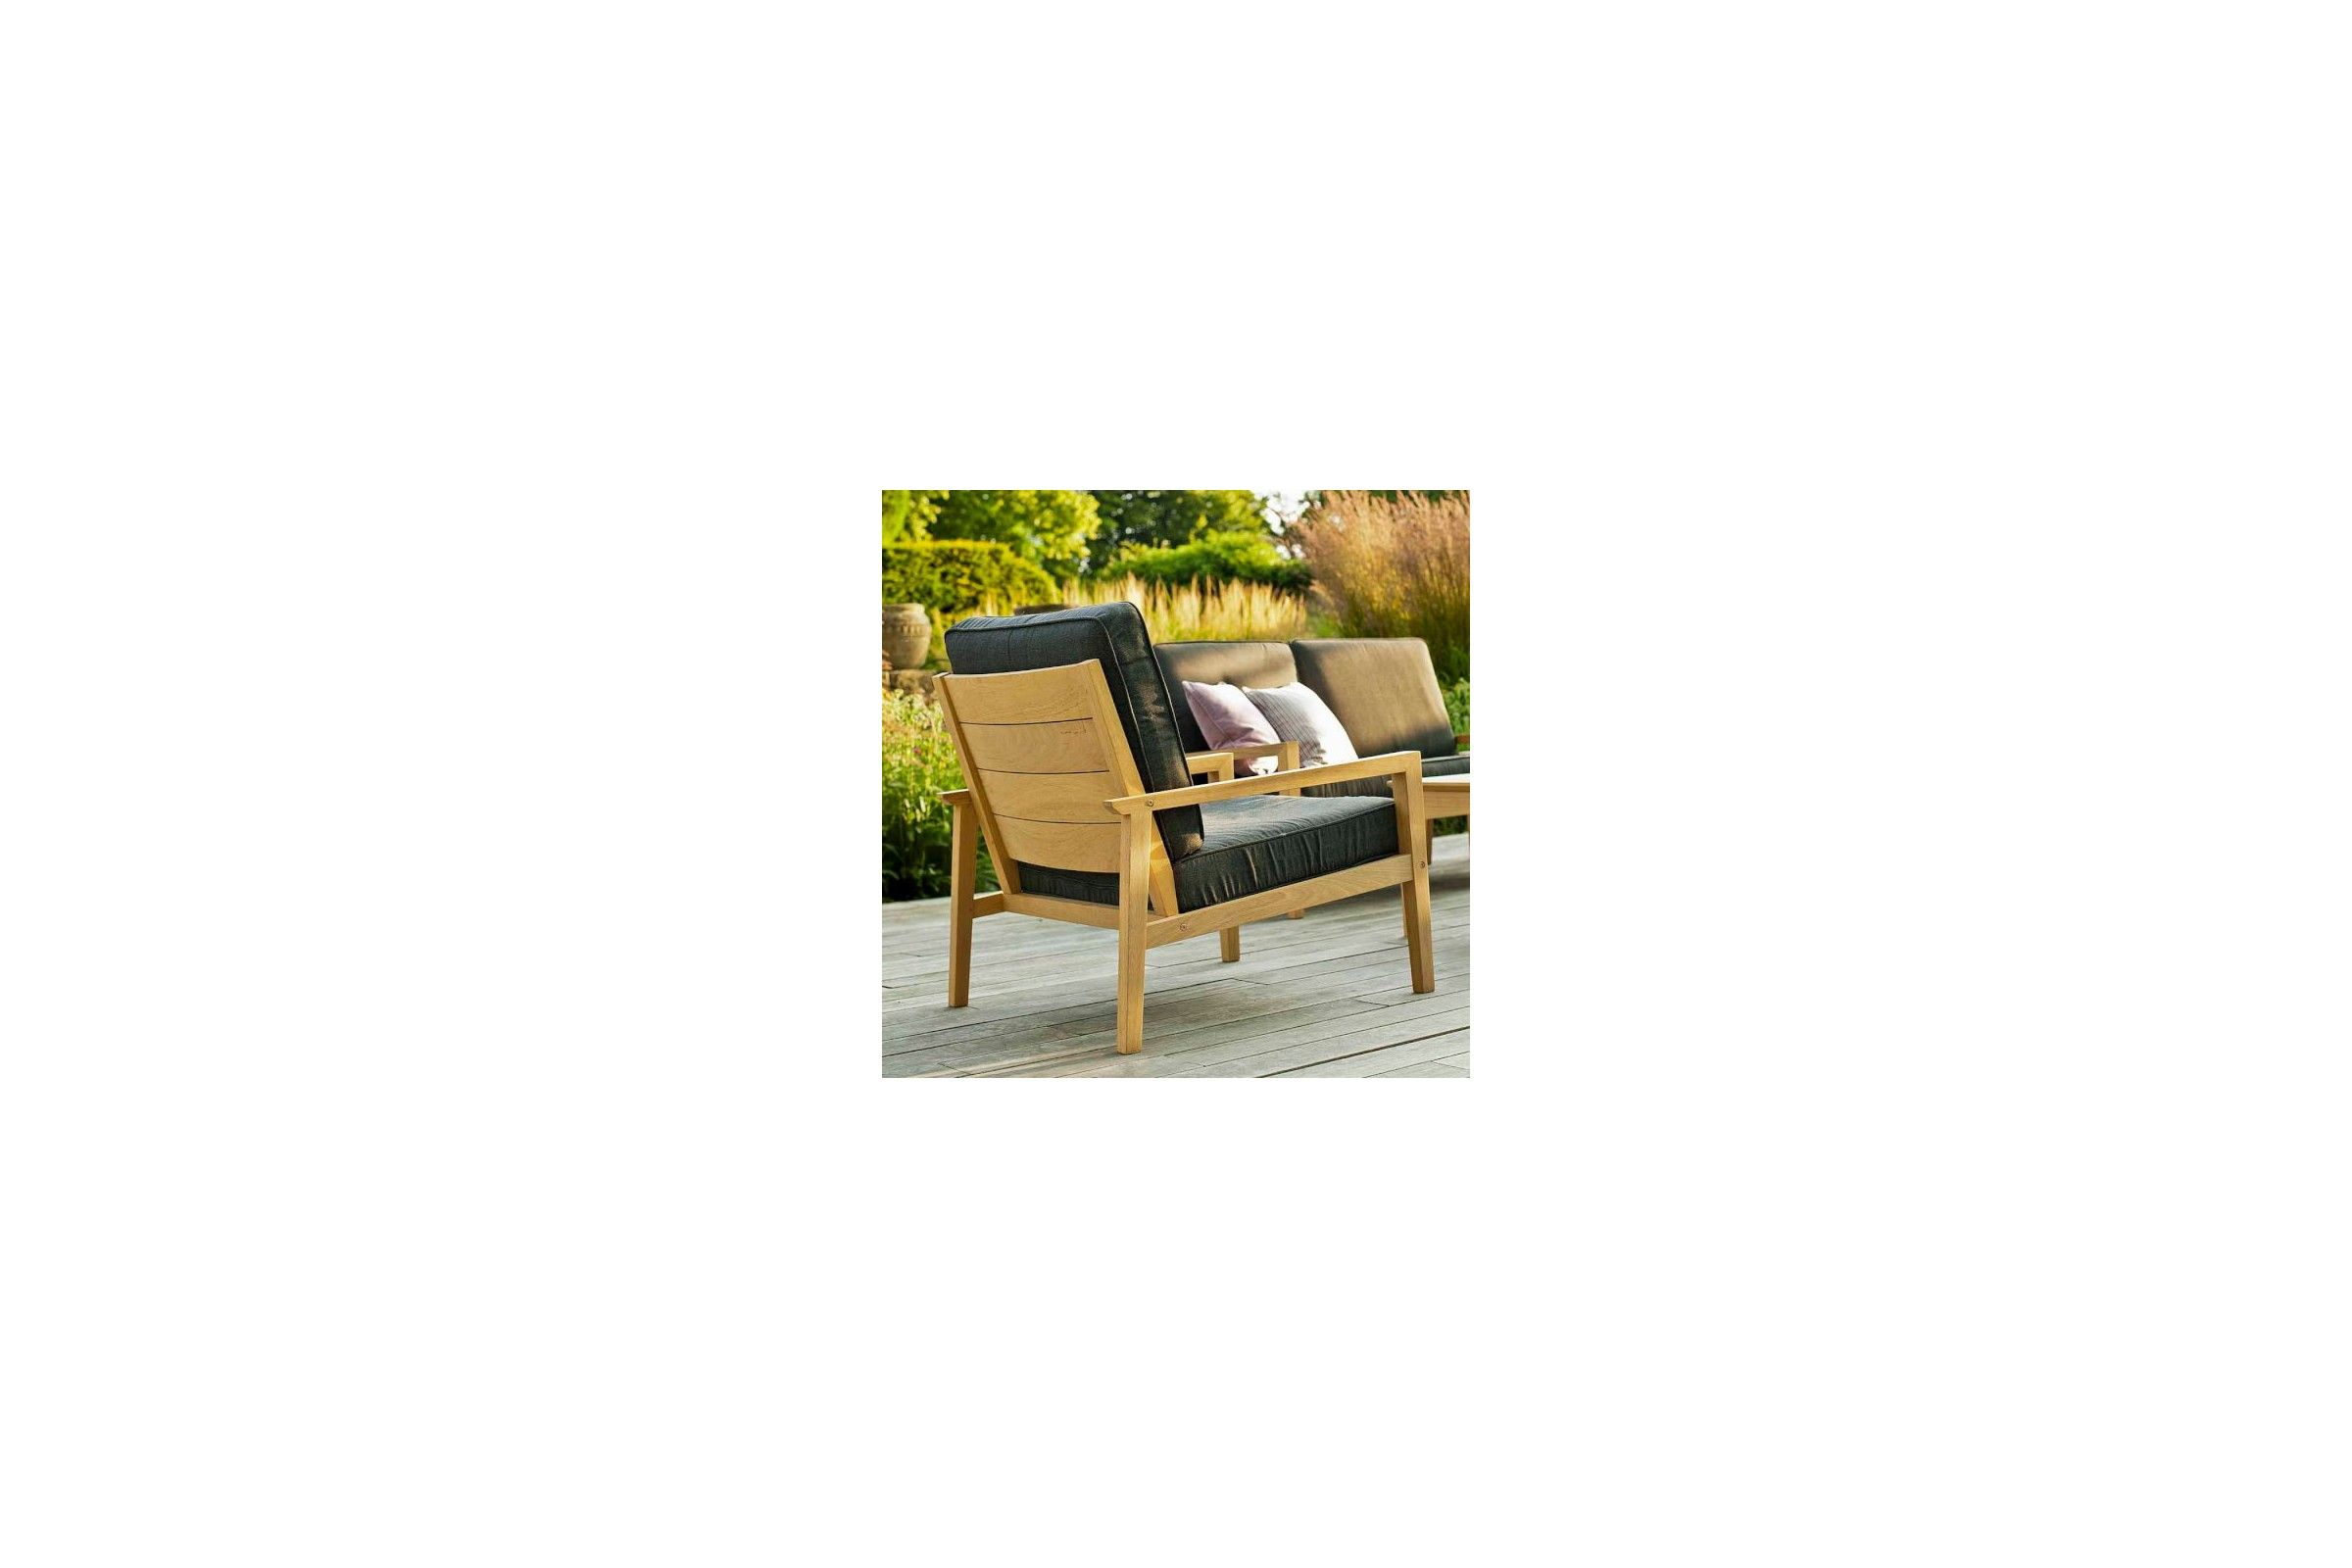 coussin fauteuil de jardin en bois table de lit. Black Bedroom Furniture Sets. Home Design Ideas